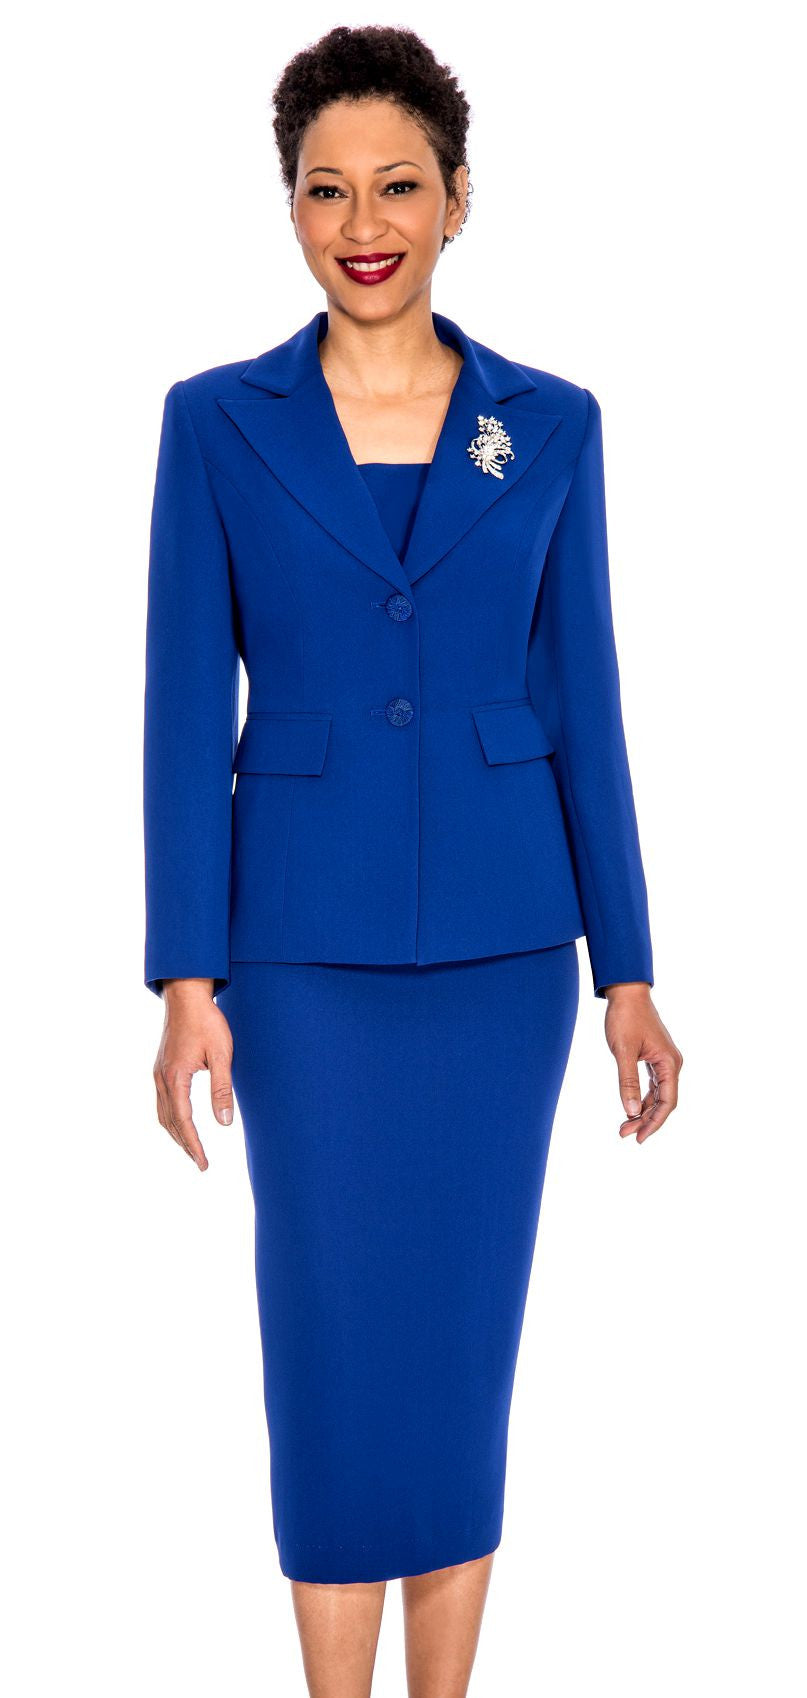 Giovanna Church Suit 0710-Royal Blue - Church Suits For Less